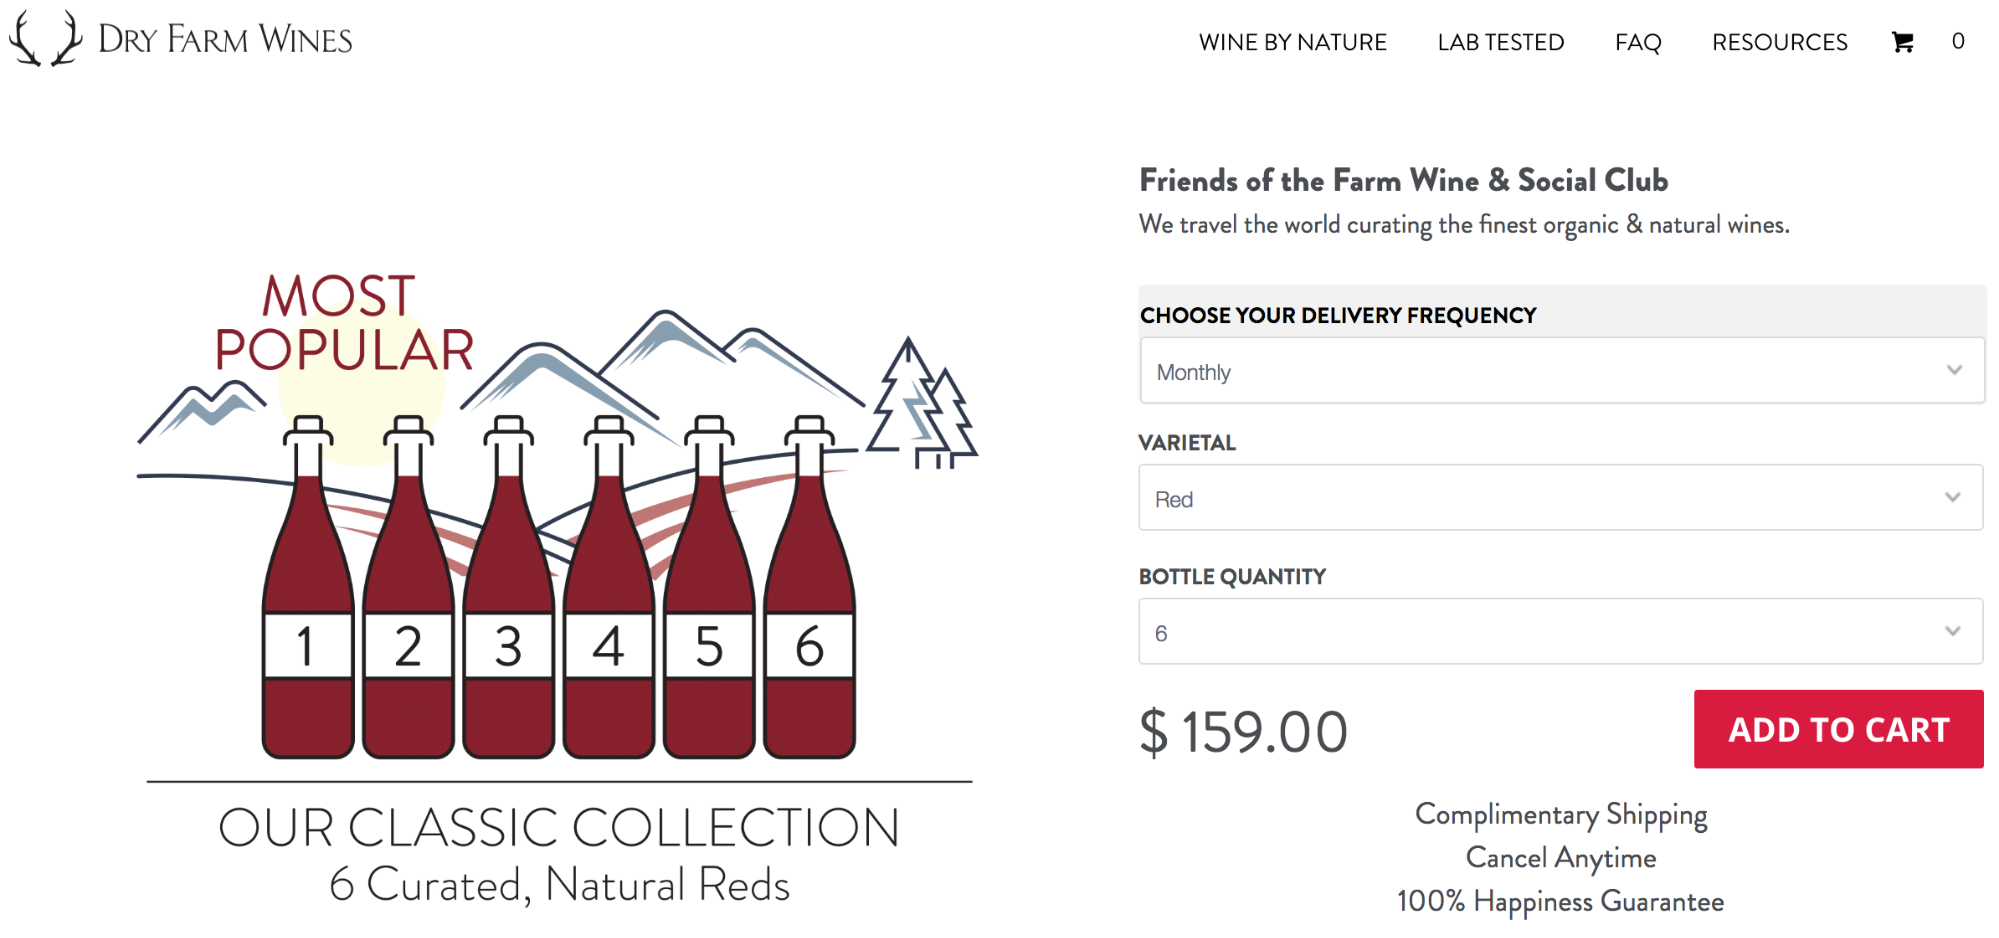 Screenshot showing a product page on a wine store